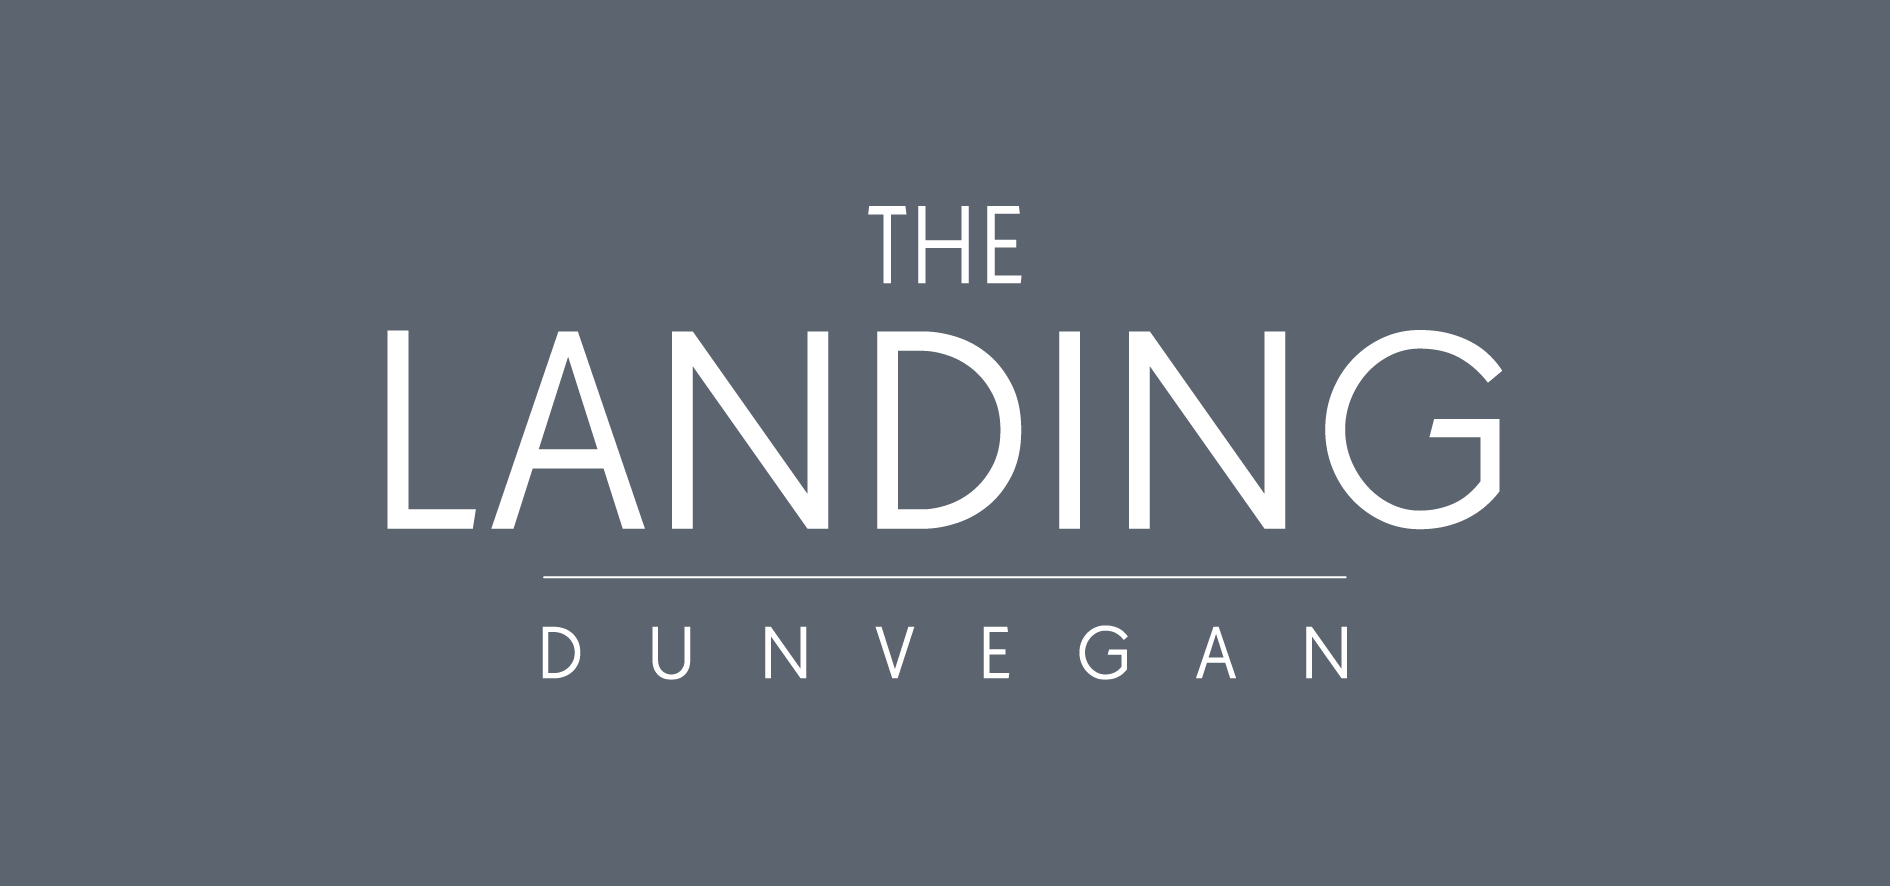 Coffee shop Edenvale, Dunvegan, East Rand – The Landing